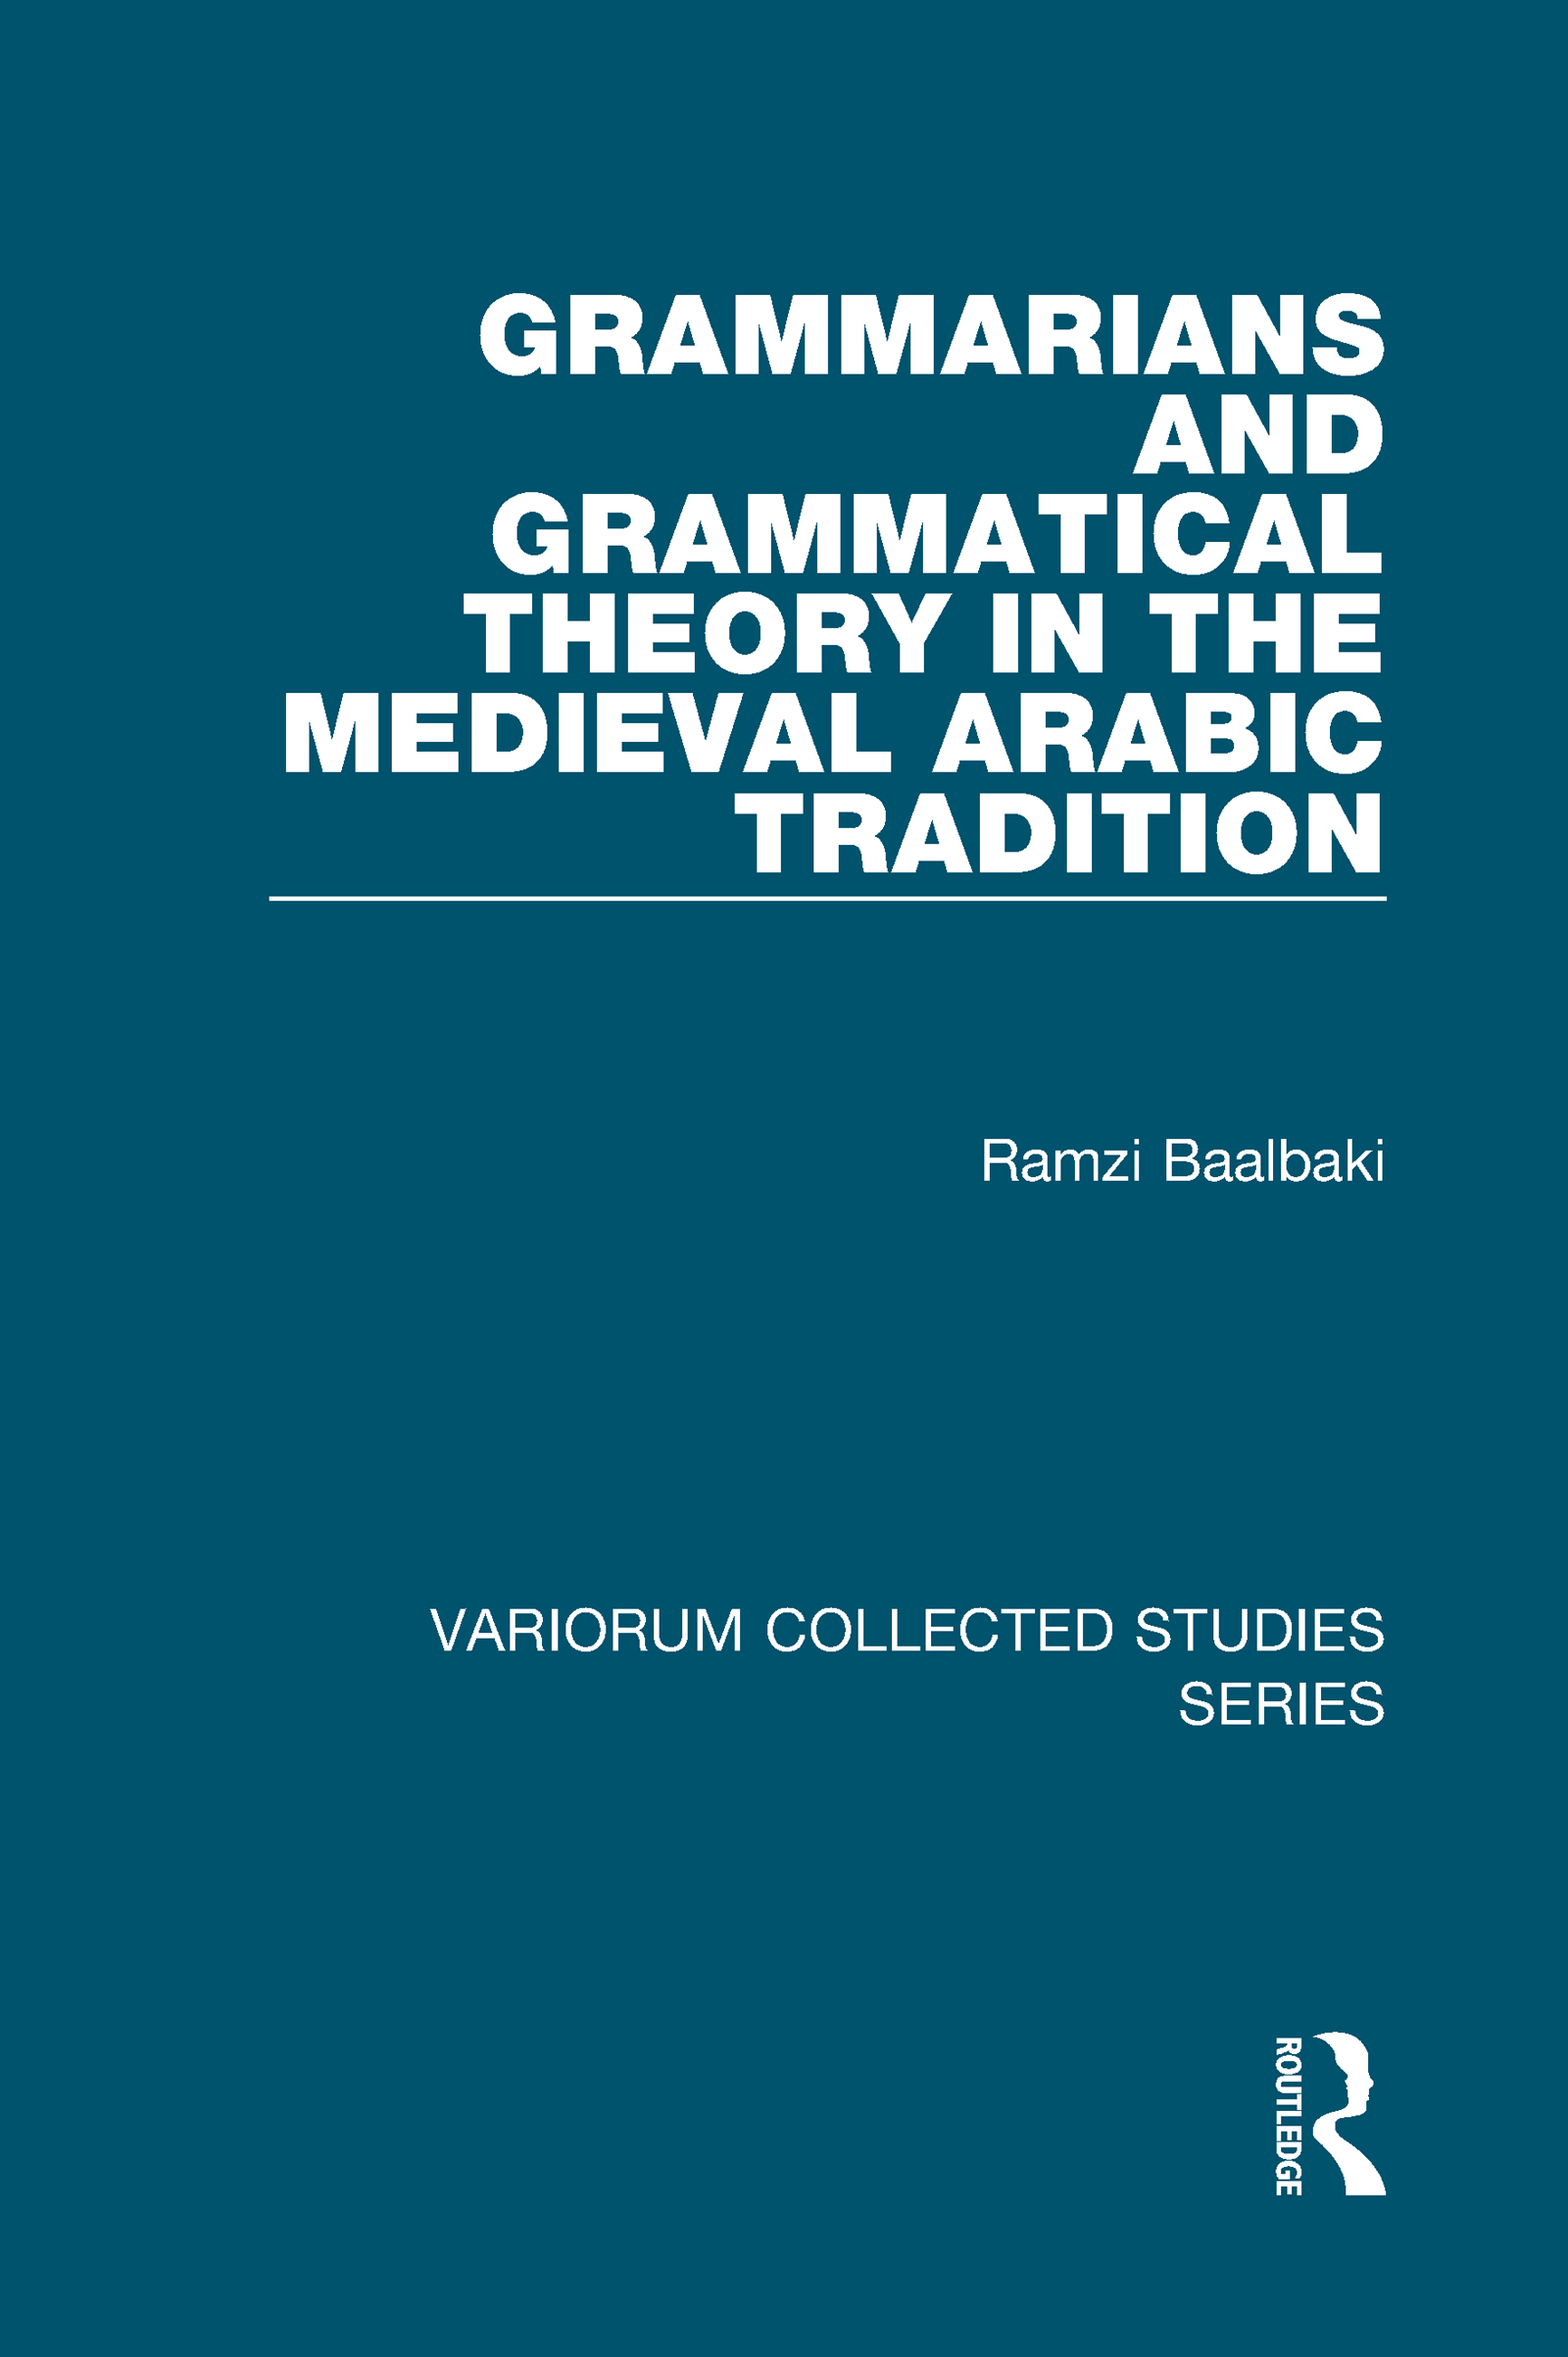 Grammarians and Grammatical Theory in the Medieval Arabic Tradition